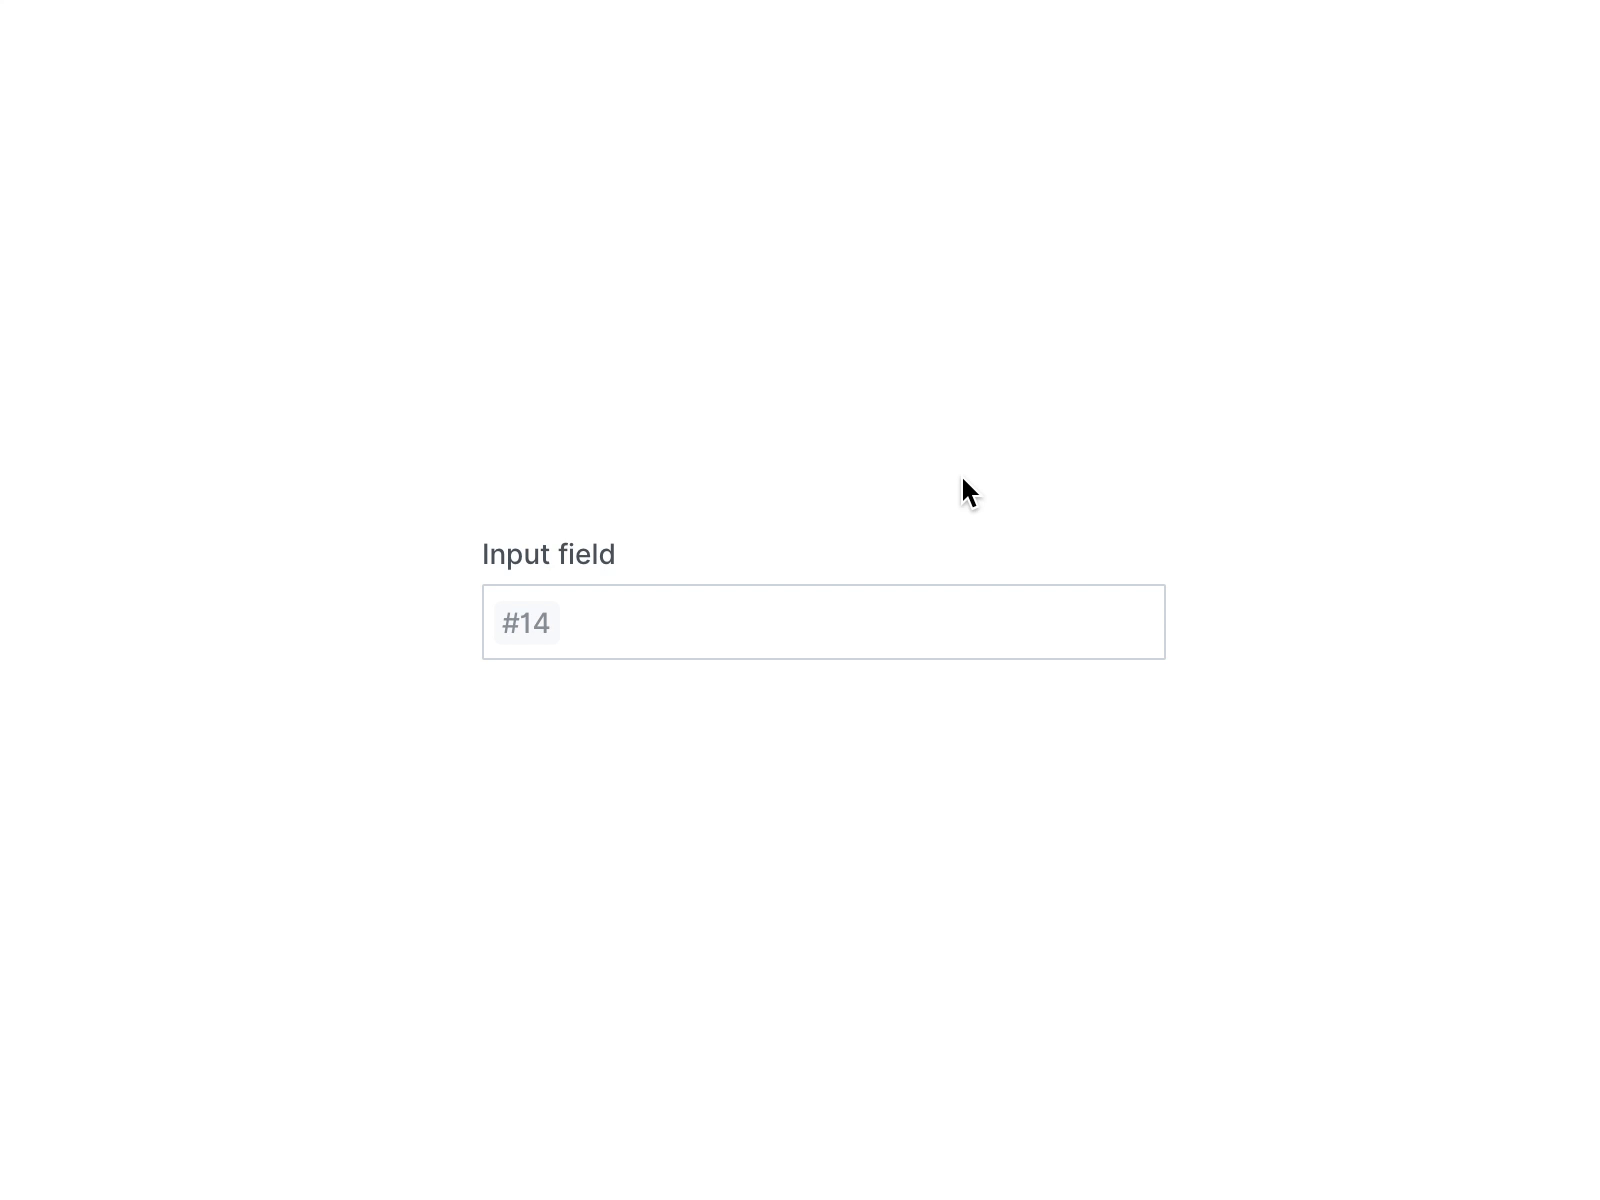 Hover input field